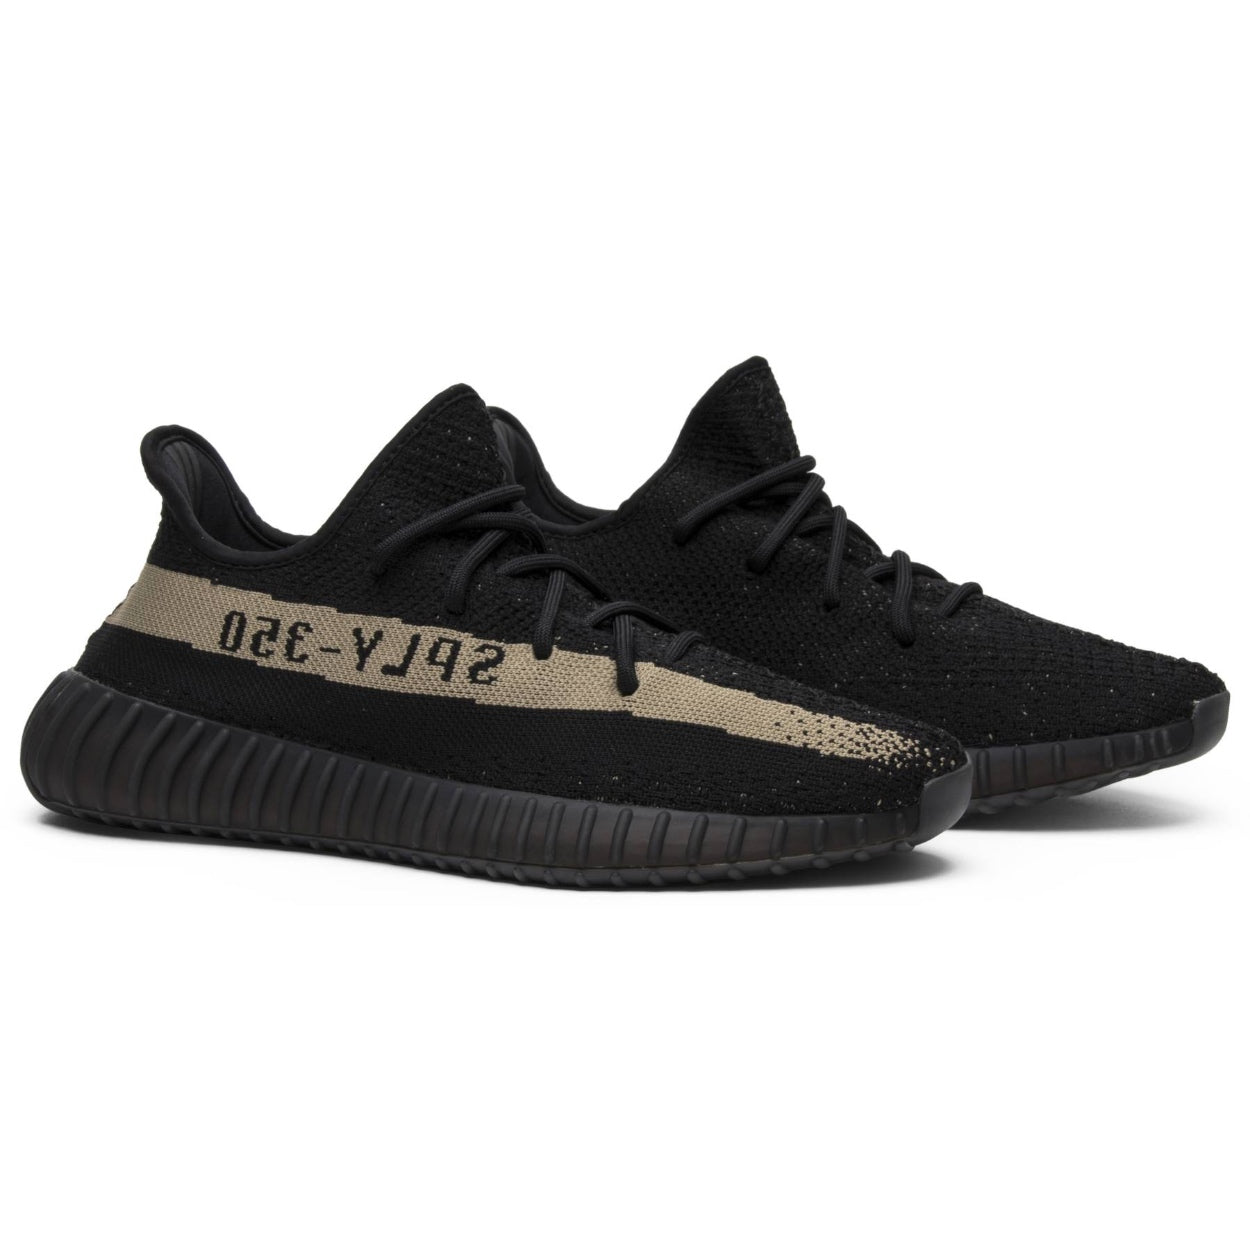 adidas Yeezy Boost 350 V2 'Core Black Green' - After Burn